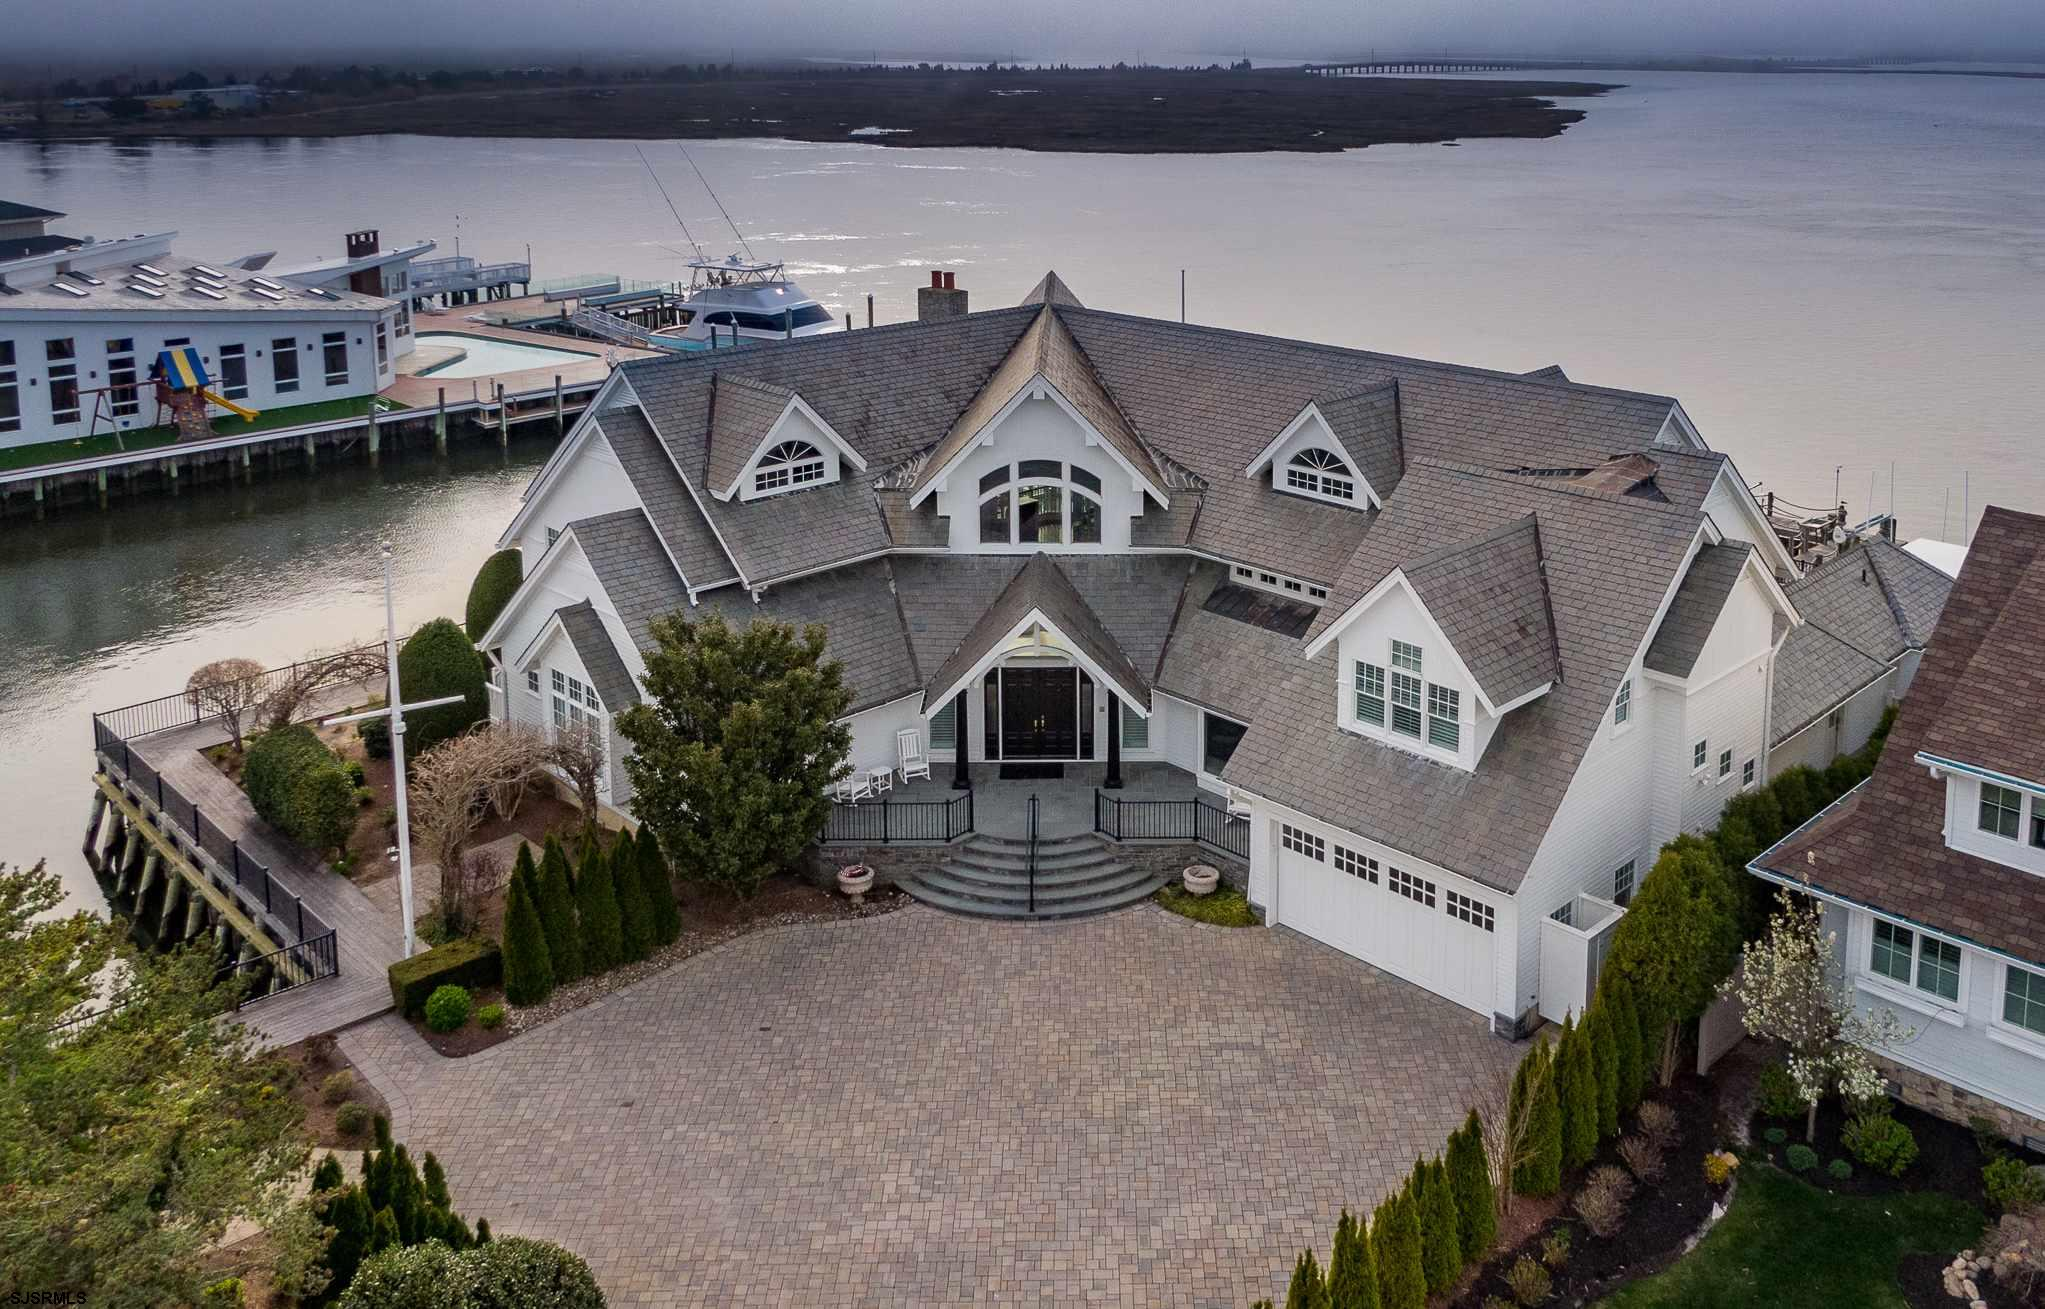 ONE OF A KIND OPEN BAYFRONT compound located on the corner of Margate's finest cul-de-sac. Panoramic